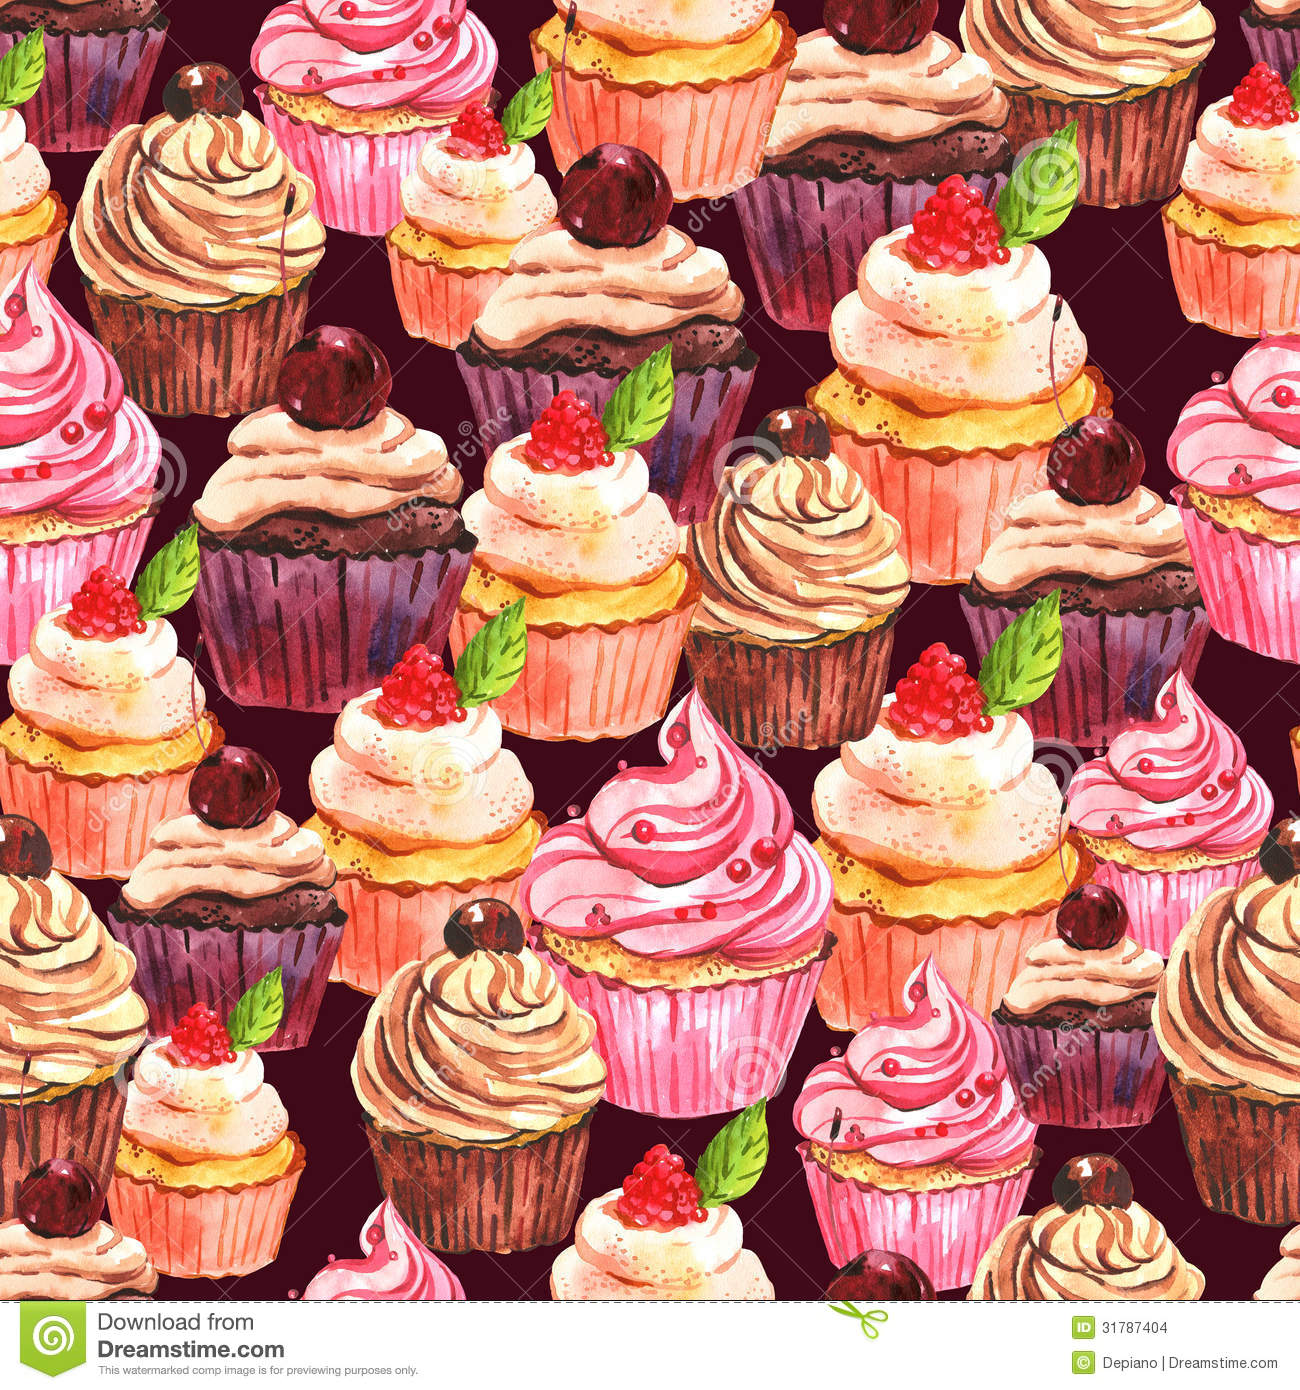 vintage cupcake wallpaper - photo #9